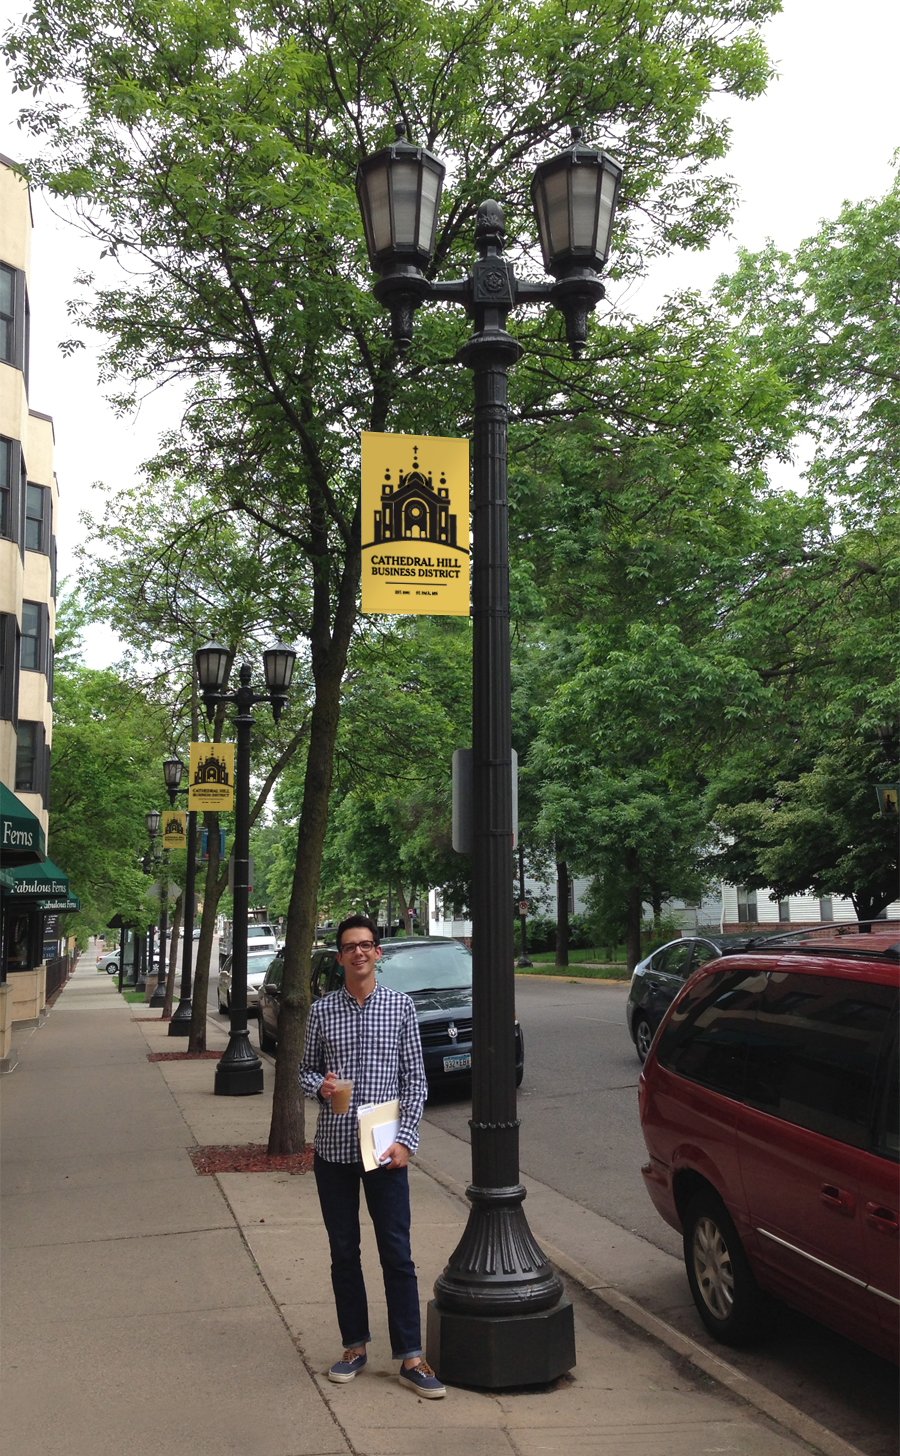 Proposed lamp post signage. Dashing model: Jordan Obinger